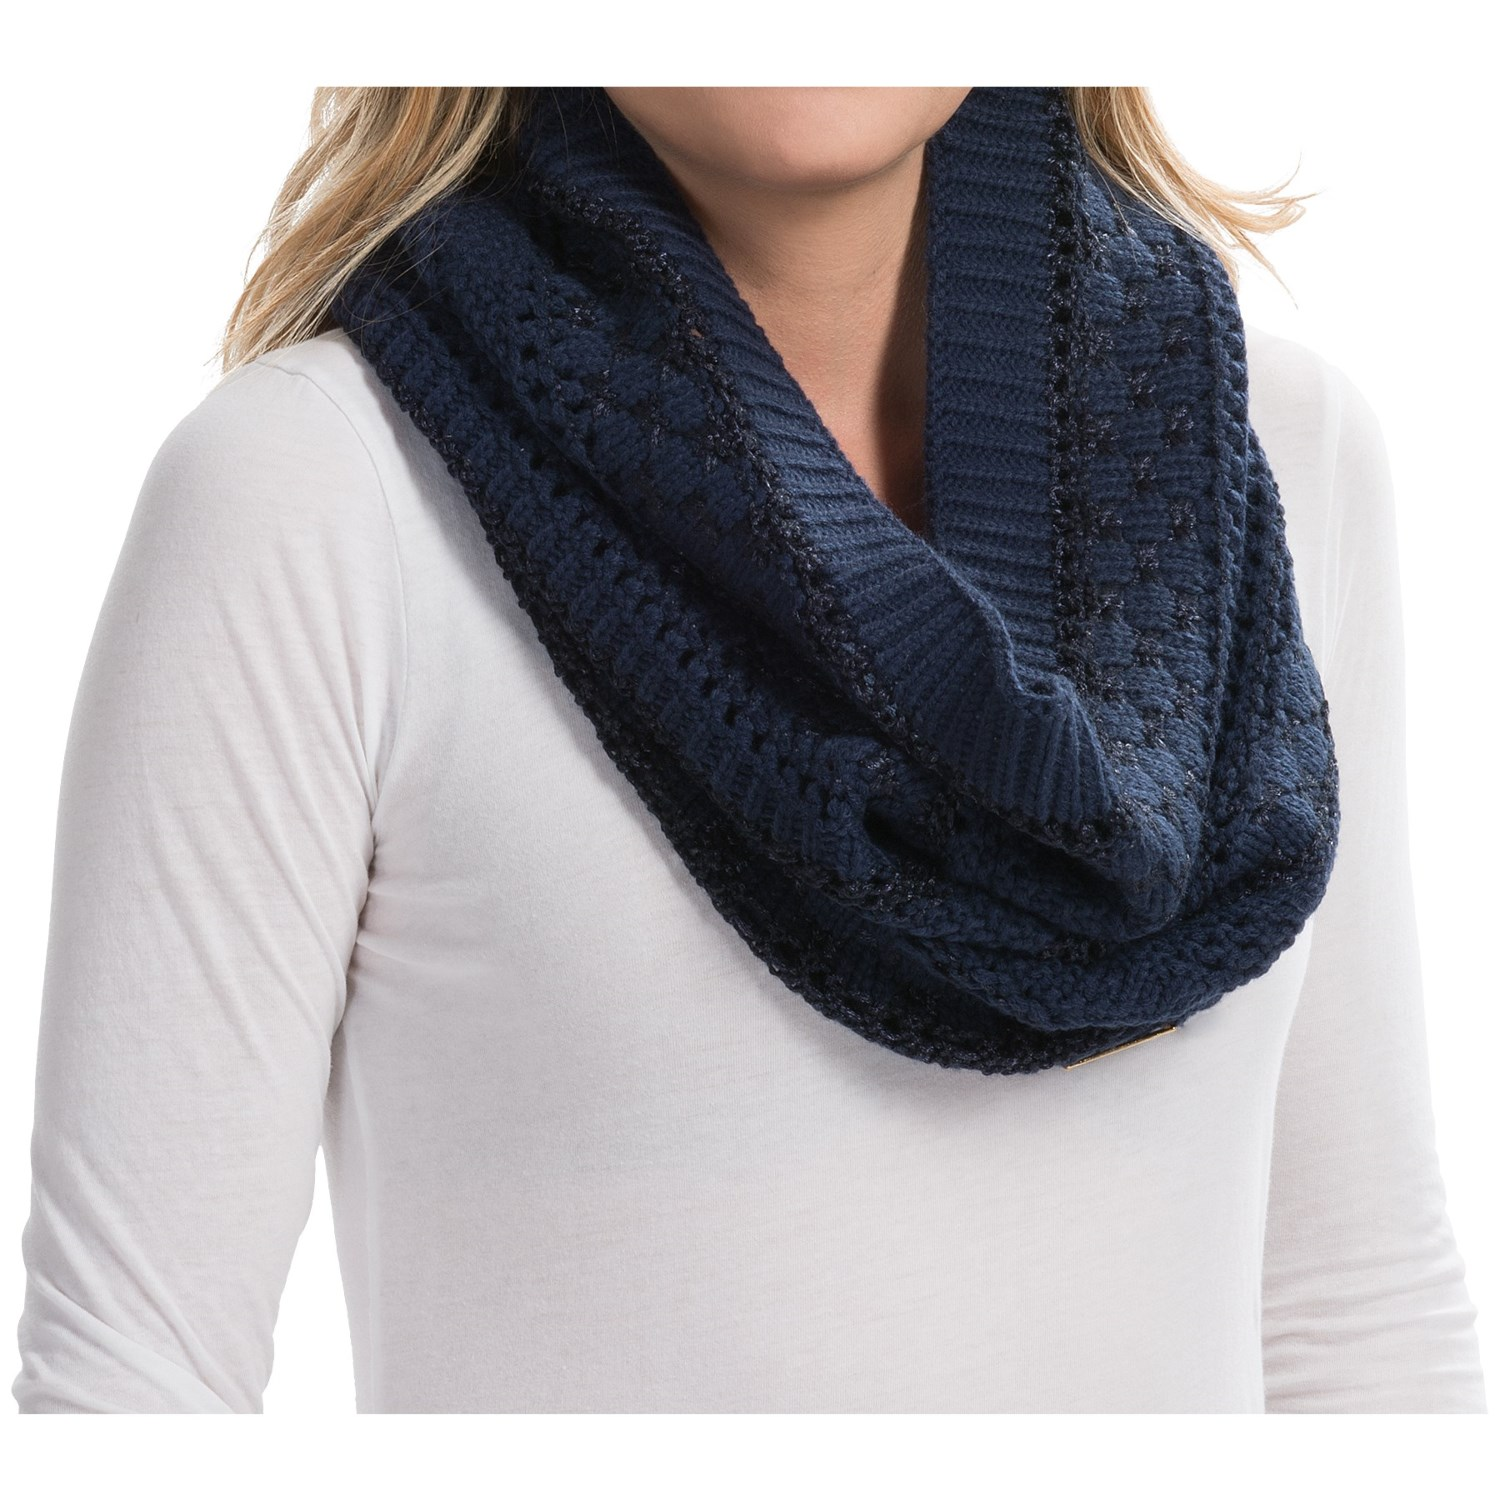 Laundry By Design Mixed Stitch Marled Snood For Women